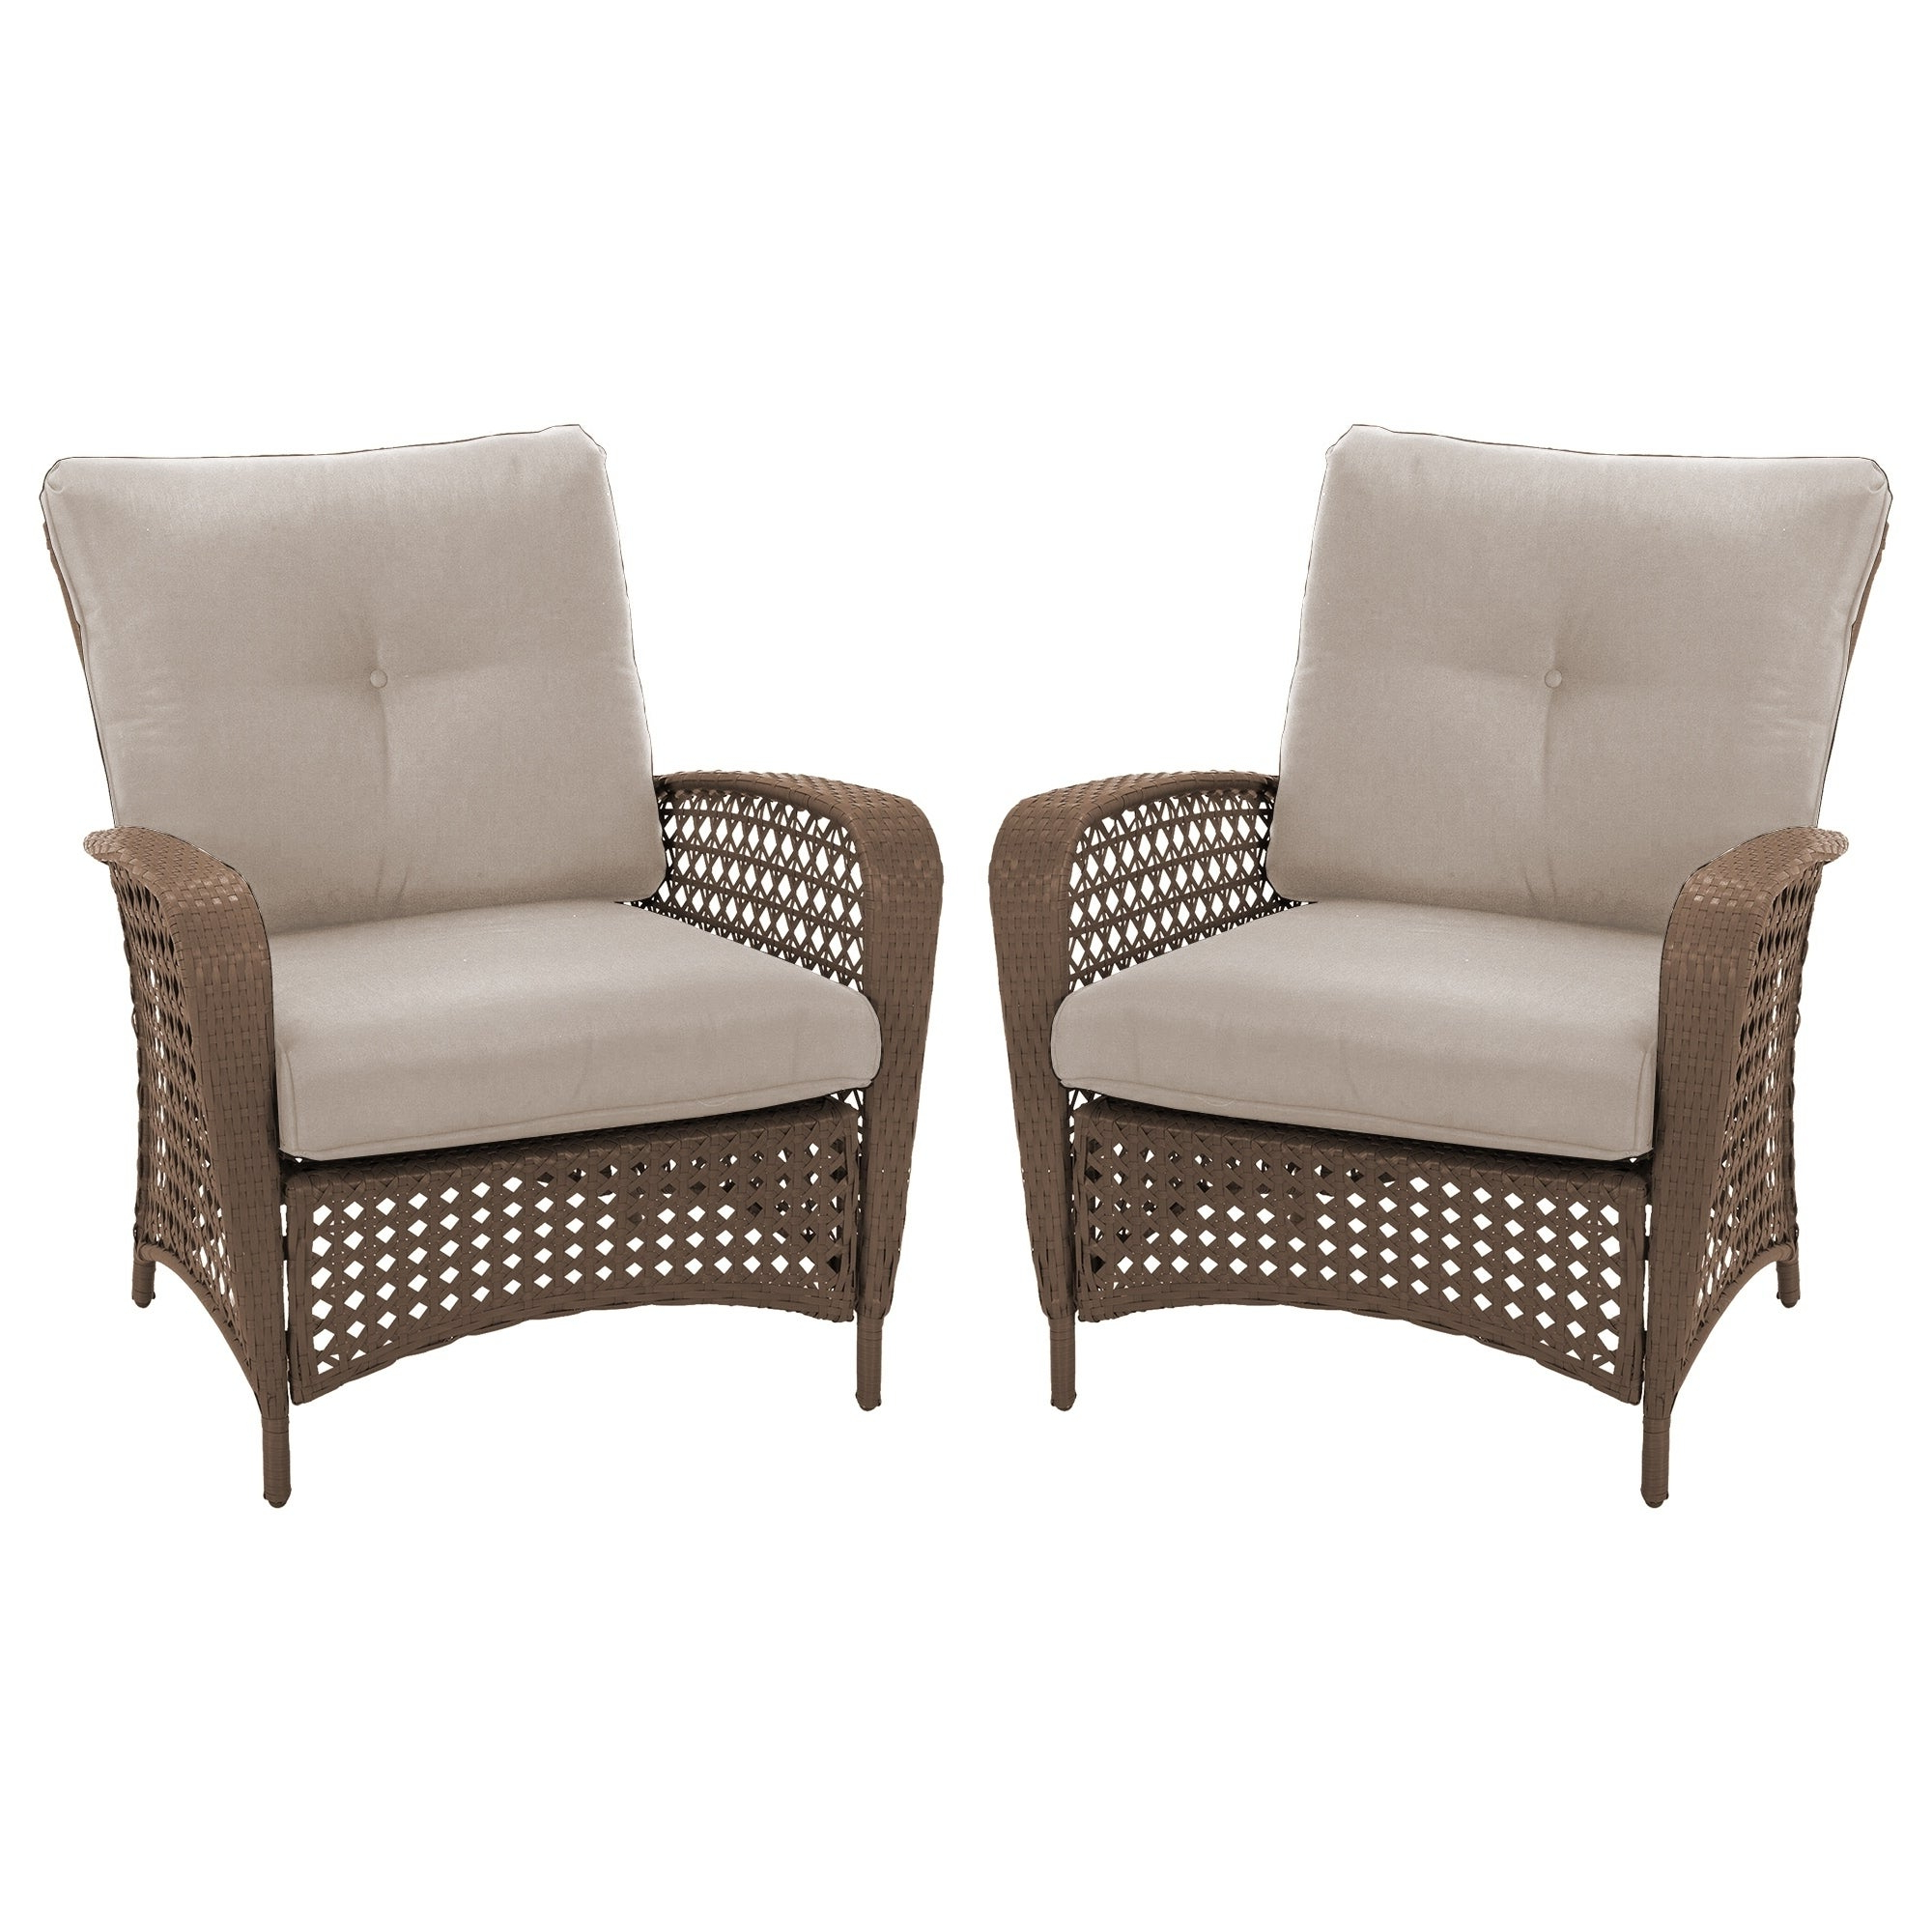 Most Up To Date Cosco Outdoor Living Lakewood Ranch Steel Woven Wicker Lounge Chairs With Cushions (set Of 2 Chairs) For Cosco Outdoor Steel Woven Wicker Chaise Lounge Chairs (View 18 of 25)